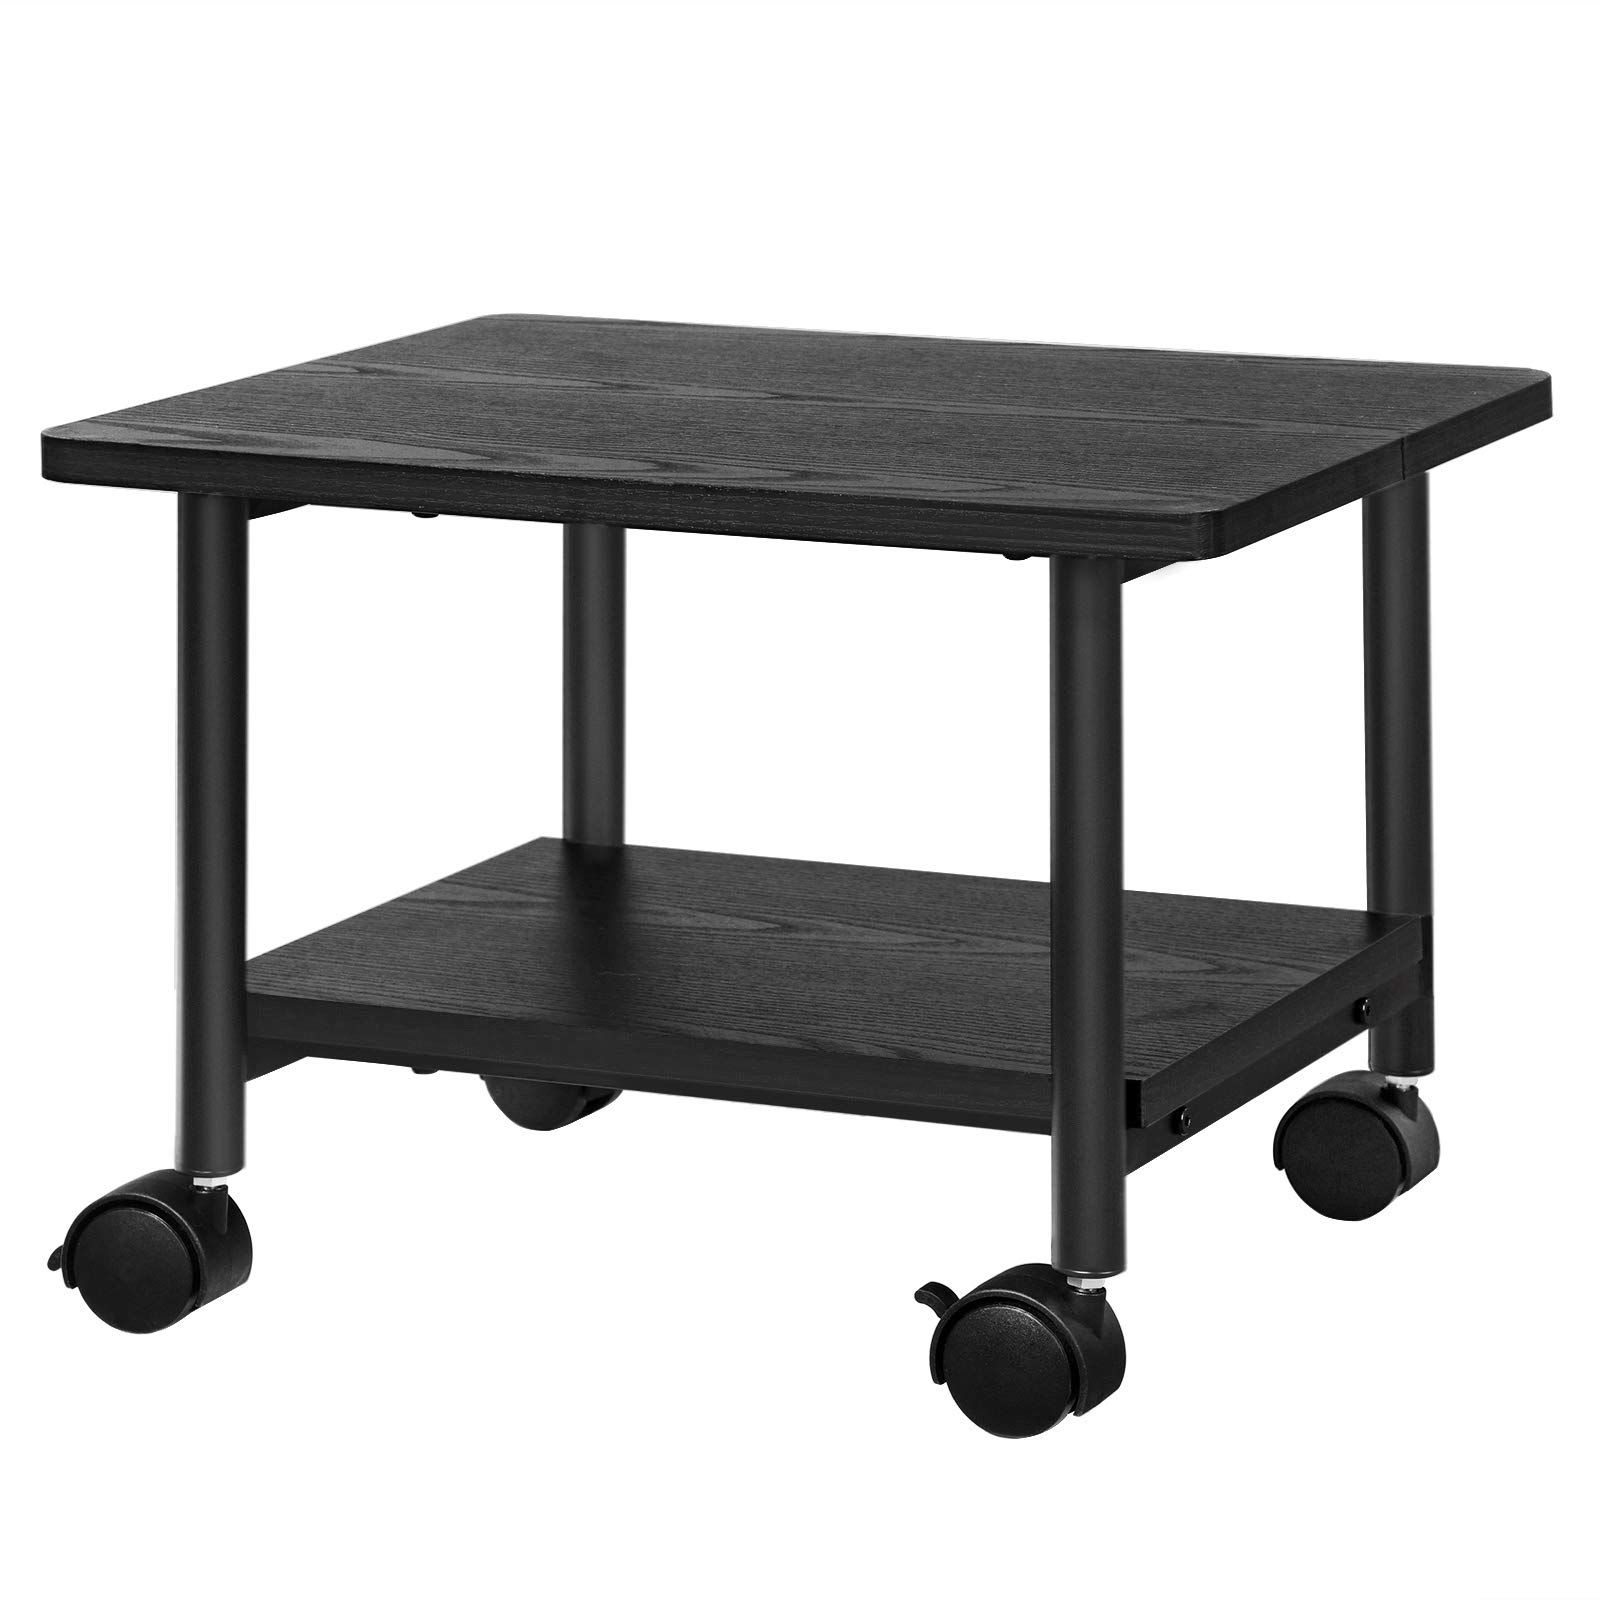 SONGMICS Under Desk Printer Stand and Mobile Machine Cart with Shelf Heavy Duty Storage Rack for Office Home Black UOPS02B by SONGMICS